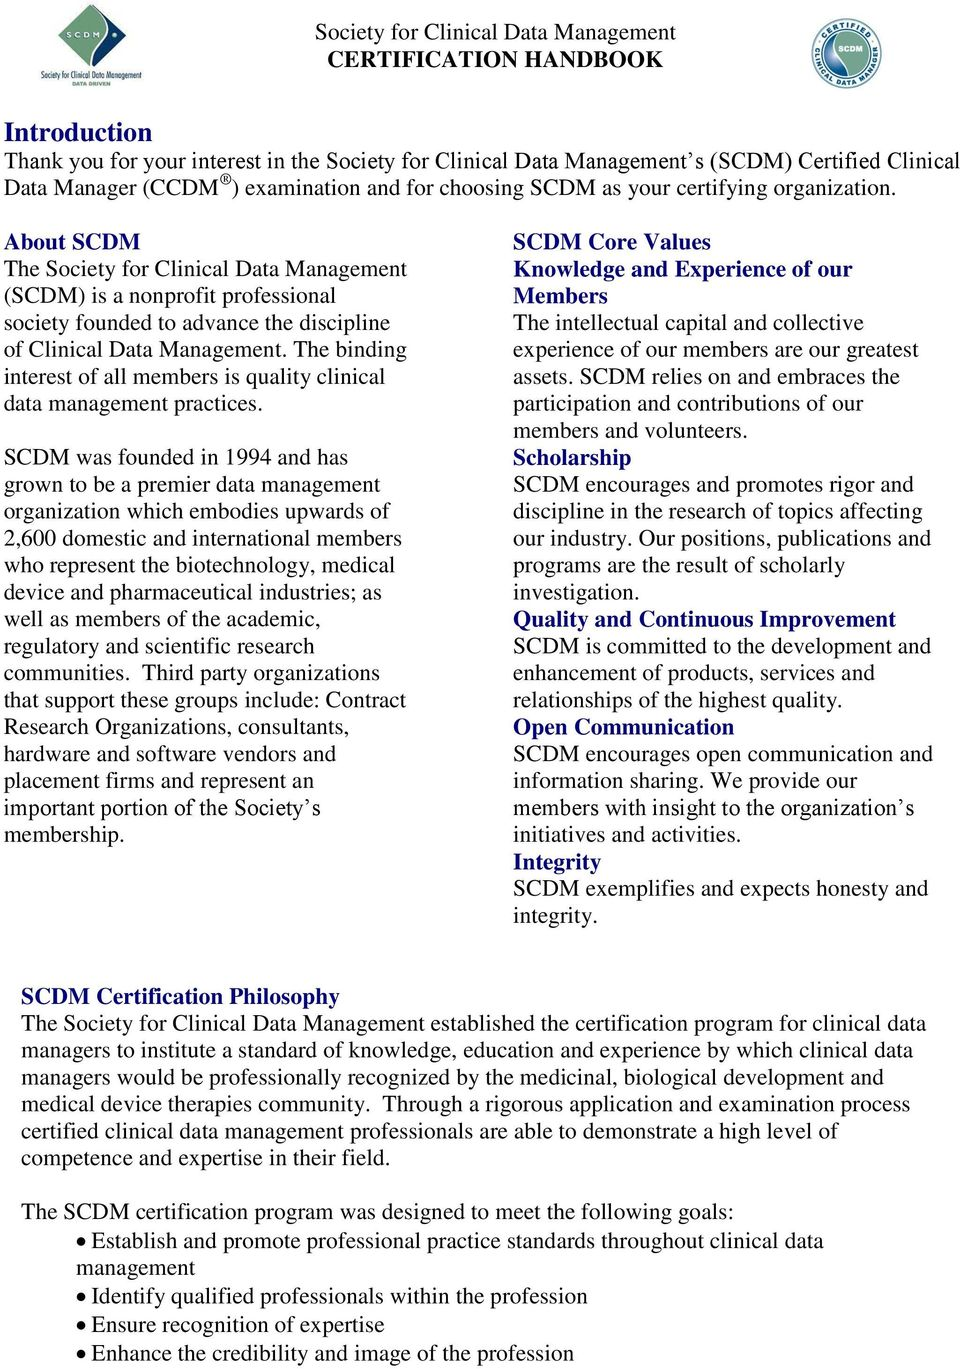 Society For Clinical Data Management Certification Handbook Pdf